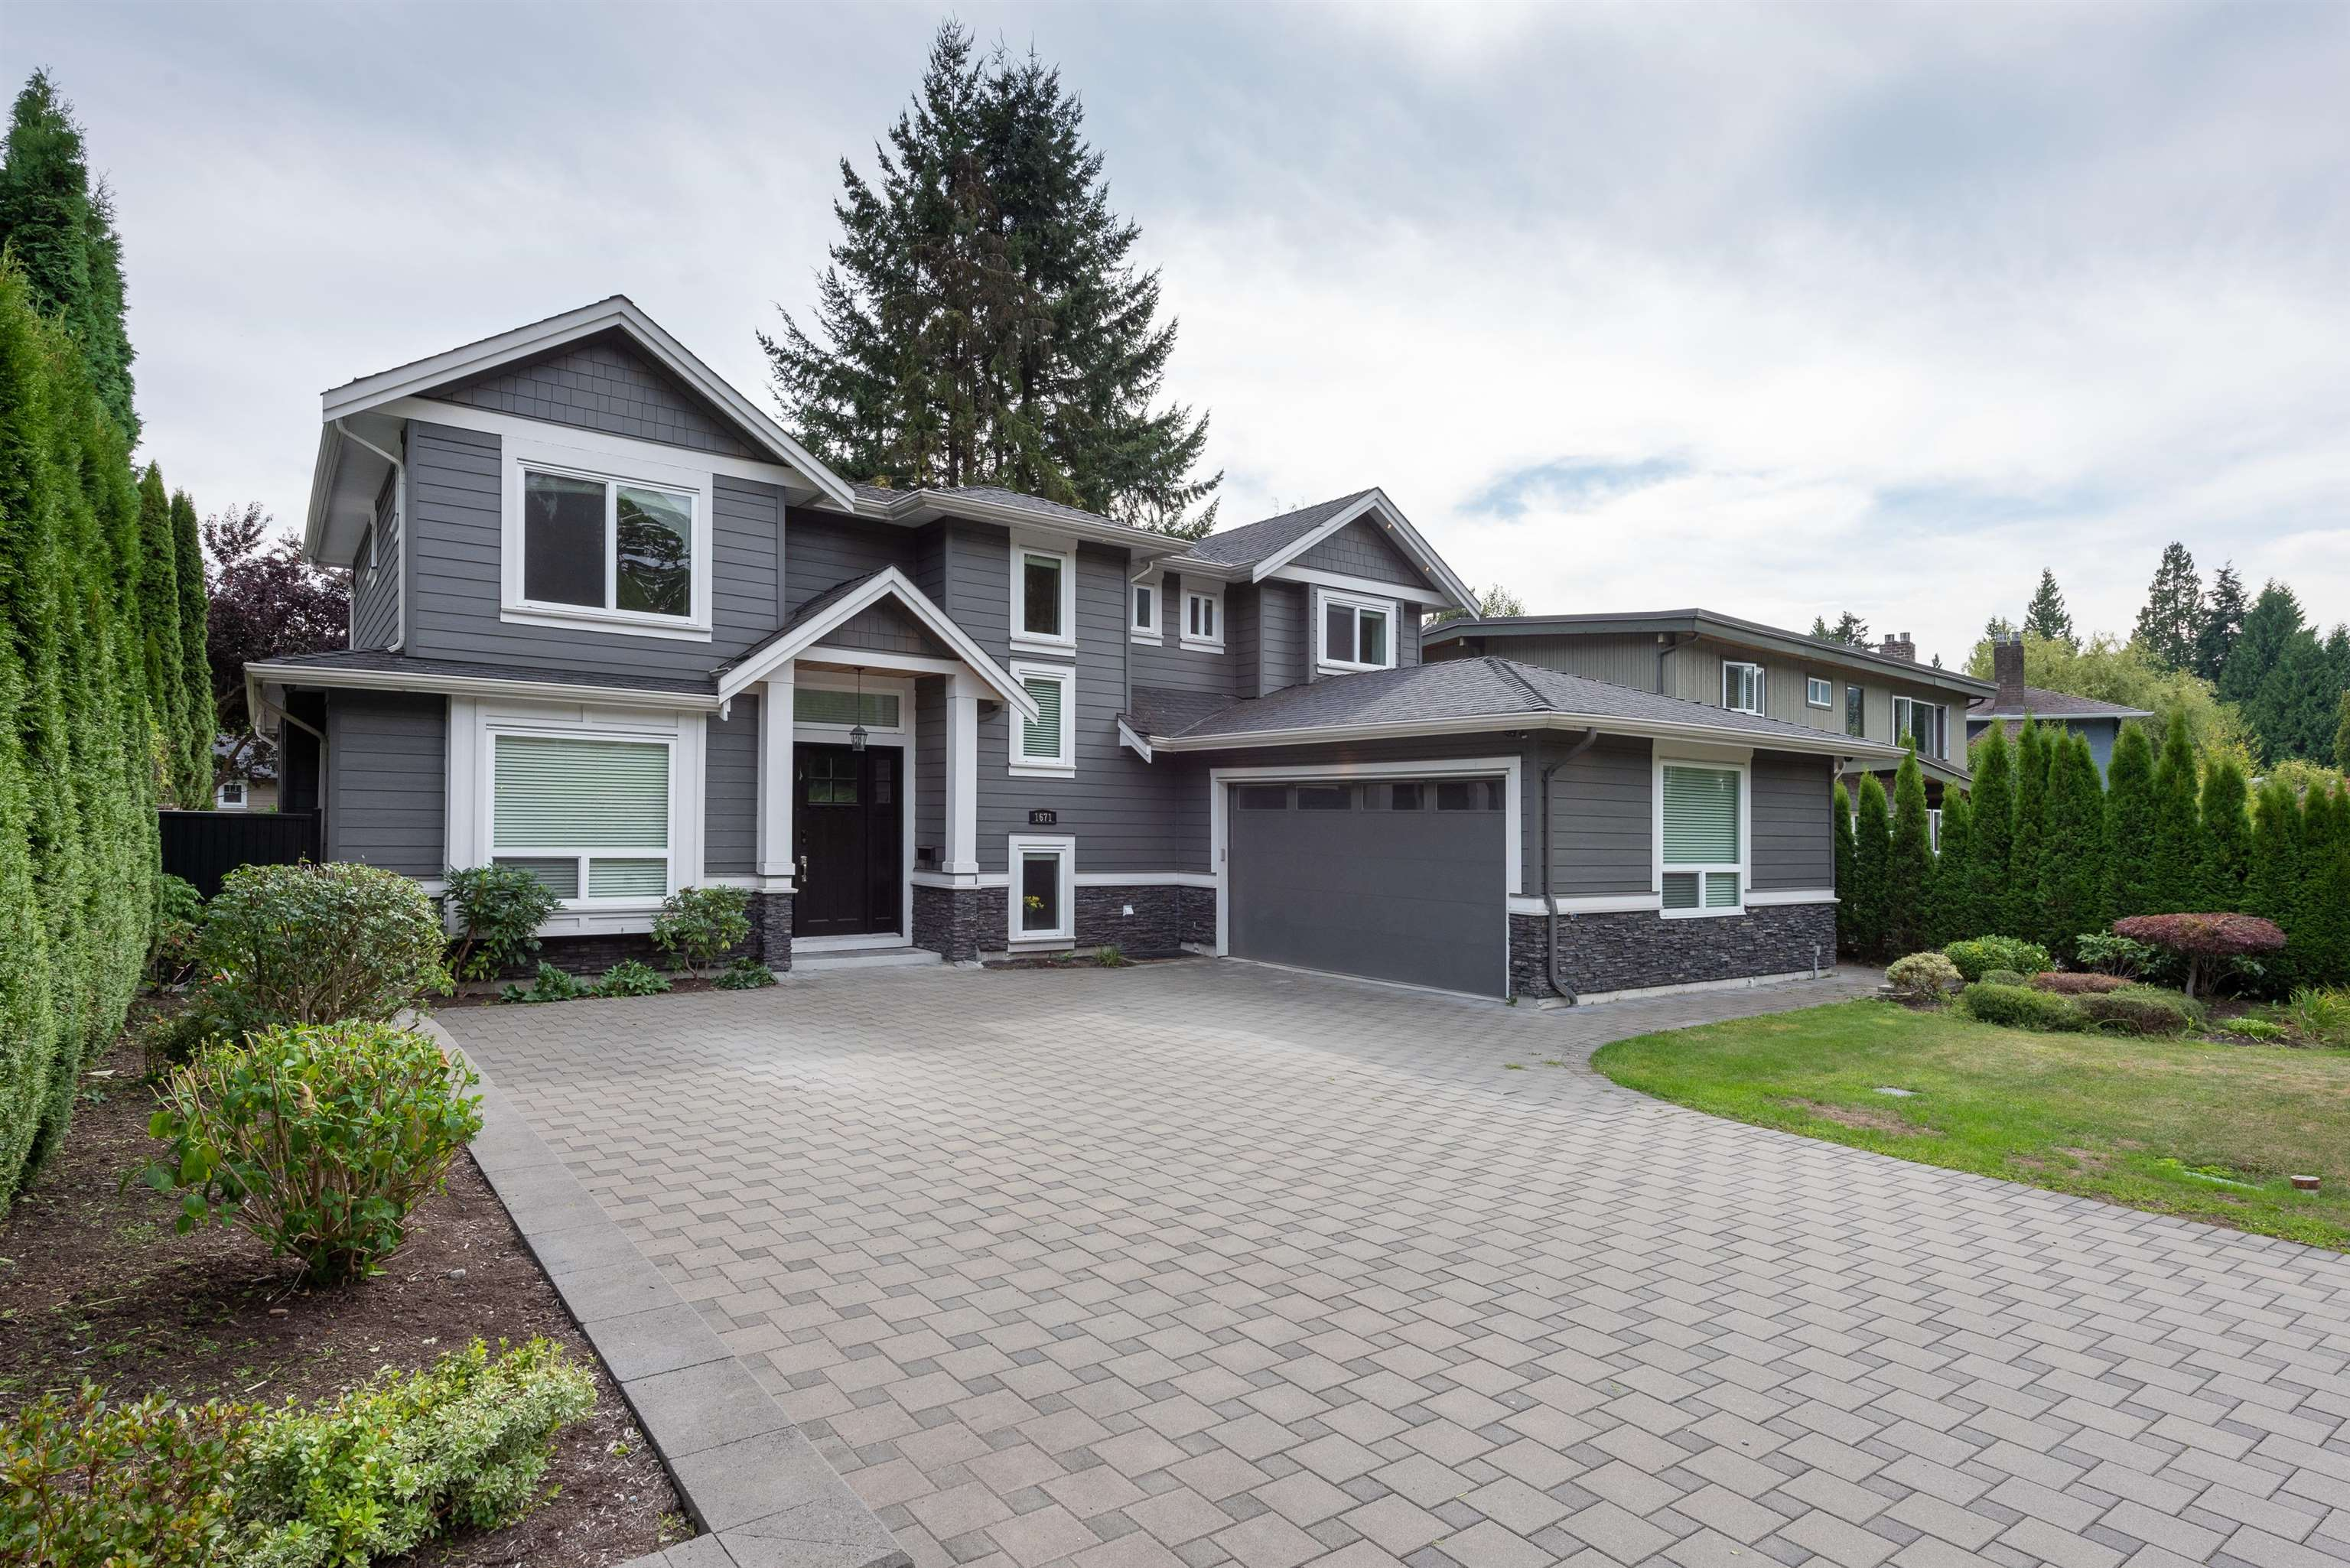 1671 PIERARD ROAD - Lynn Valley House/Single Family for sale, 6 Bedrooms (R2617072) - #1